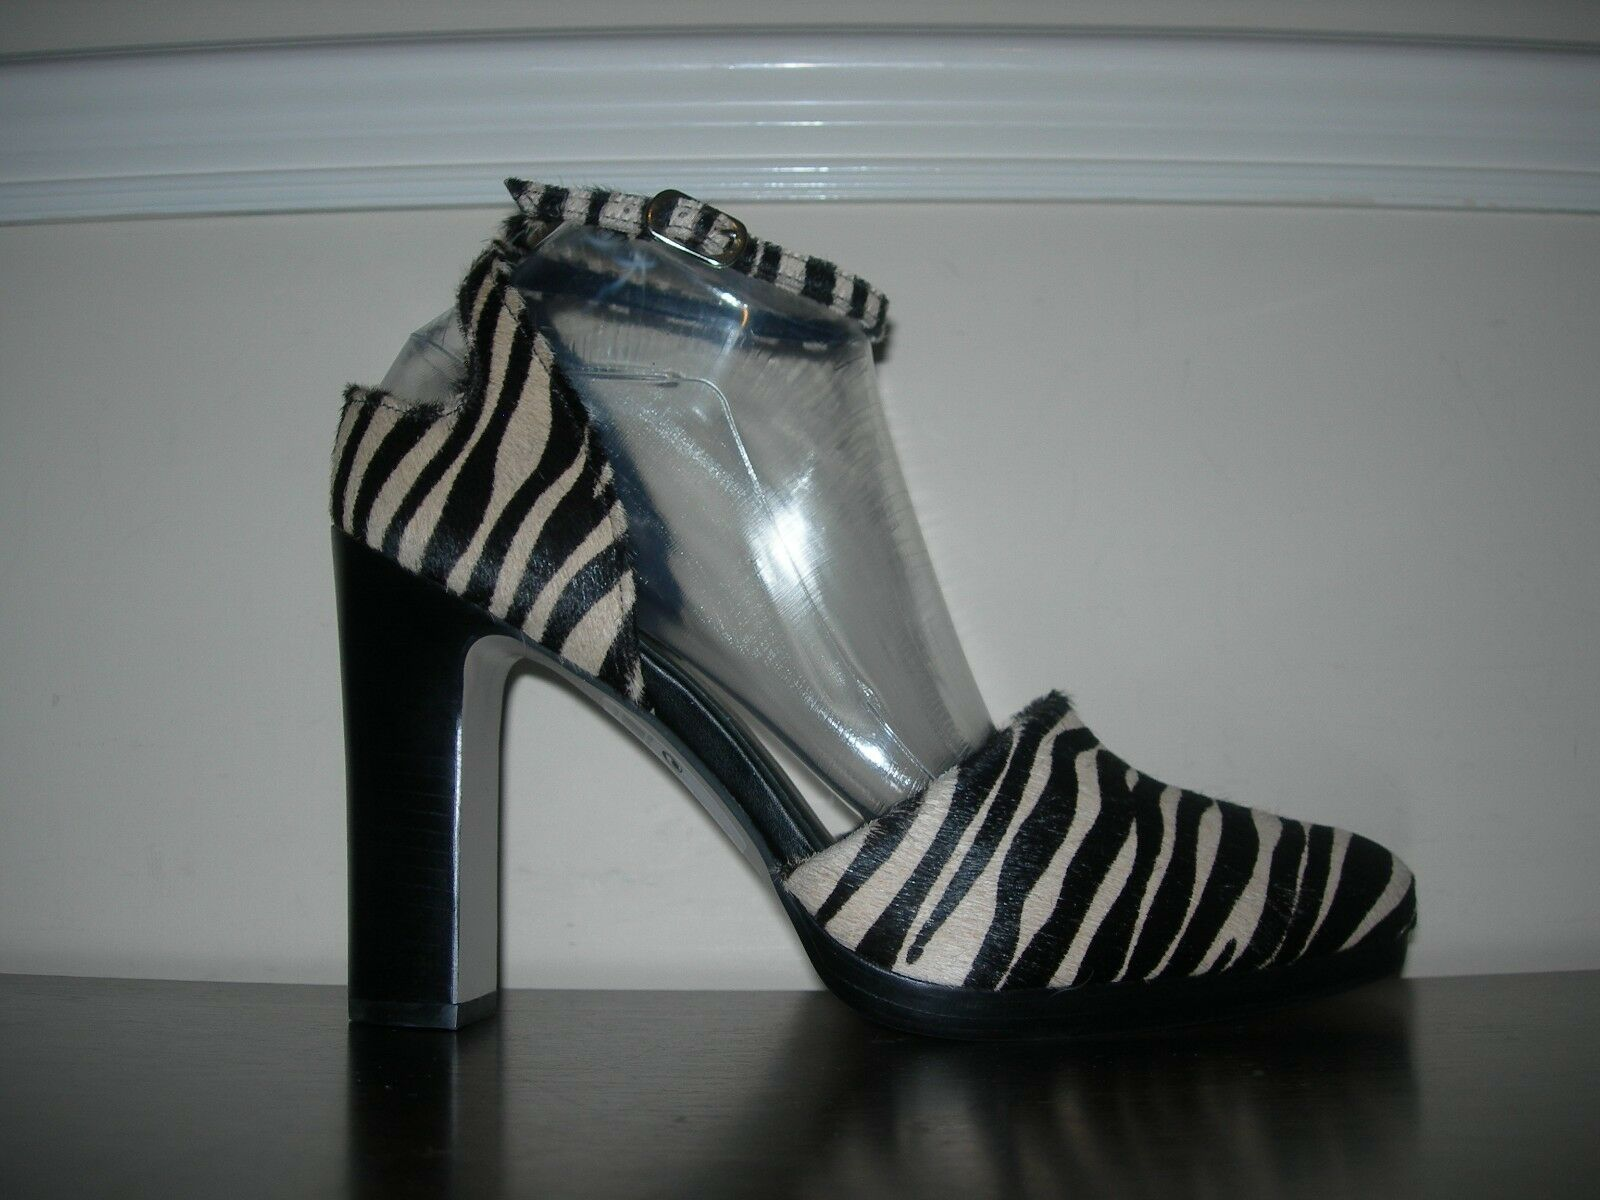 NEXT SIGNATURE damen schuhe schuhe schuhe SANDALS HEELS ANIMAL PRINT PONY HAIR EU 42   UK 8 43bd0b